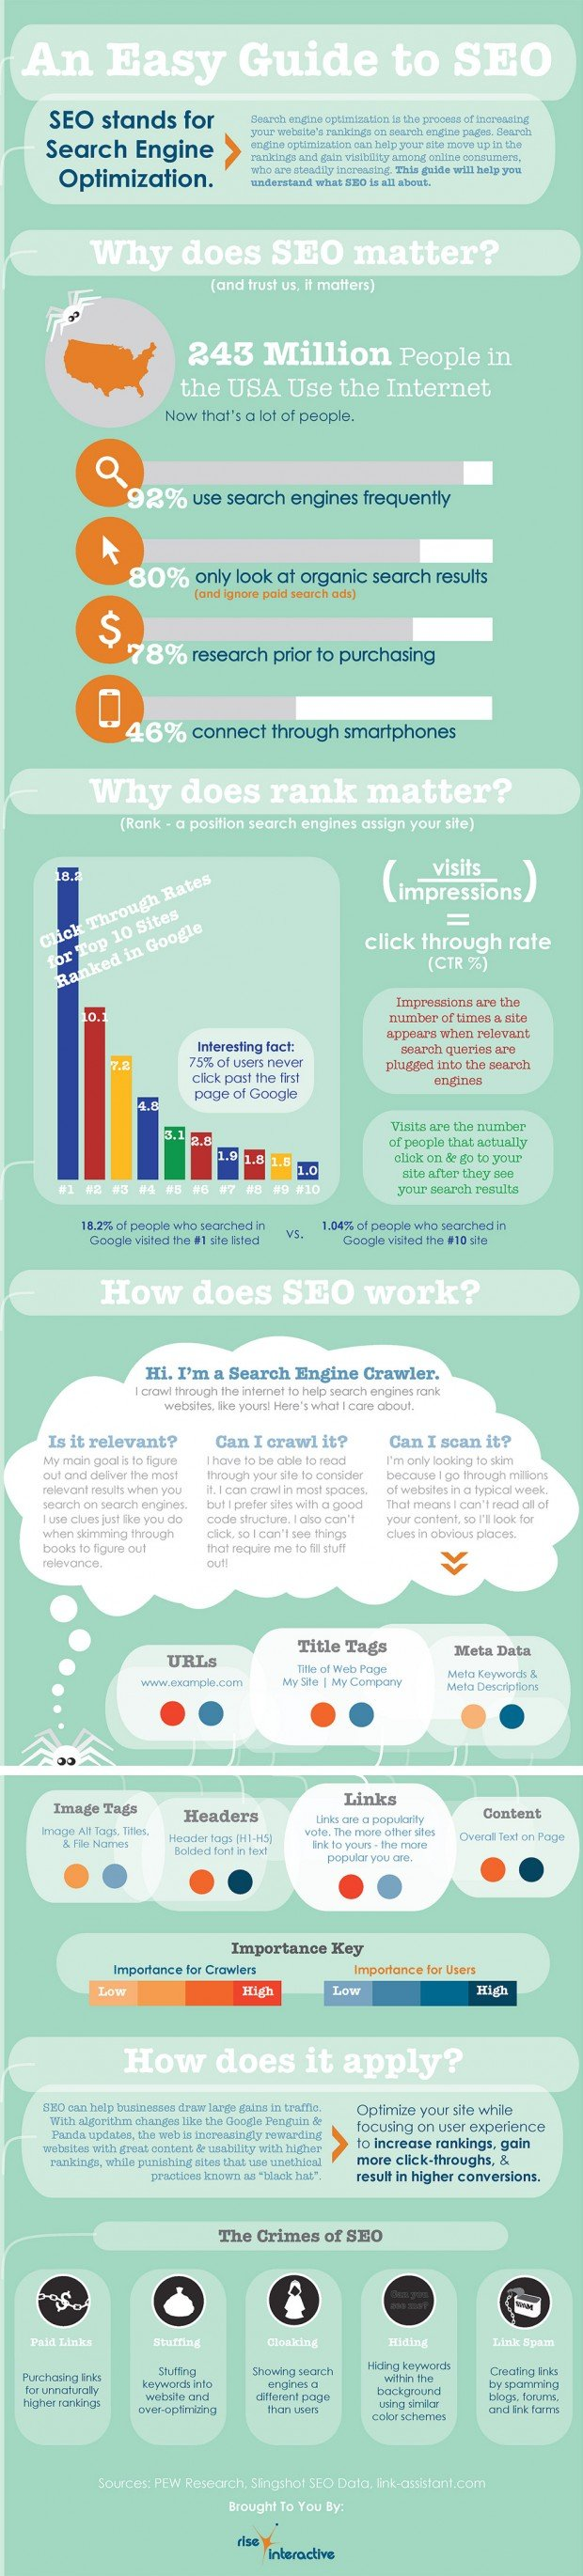 seo guide infographic